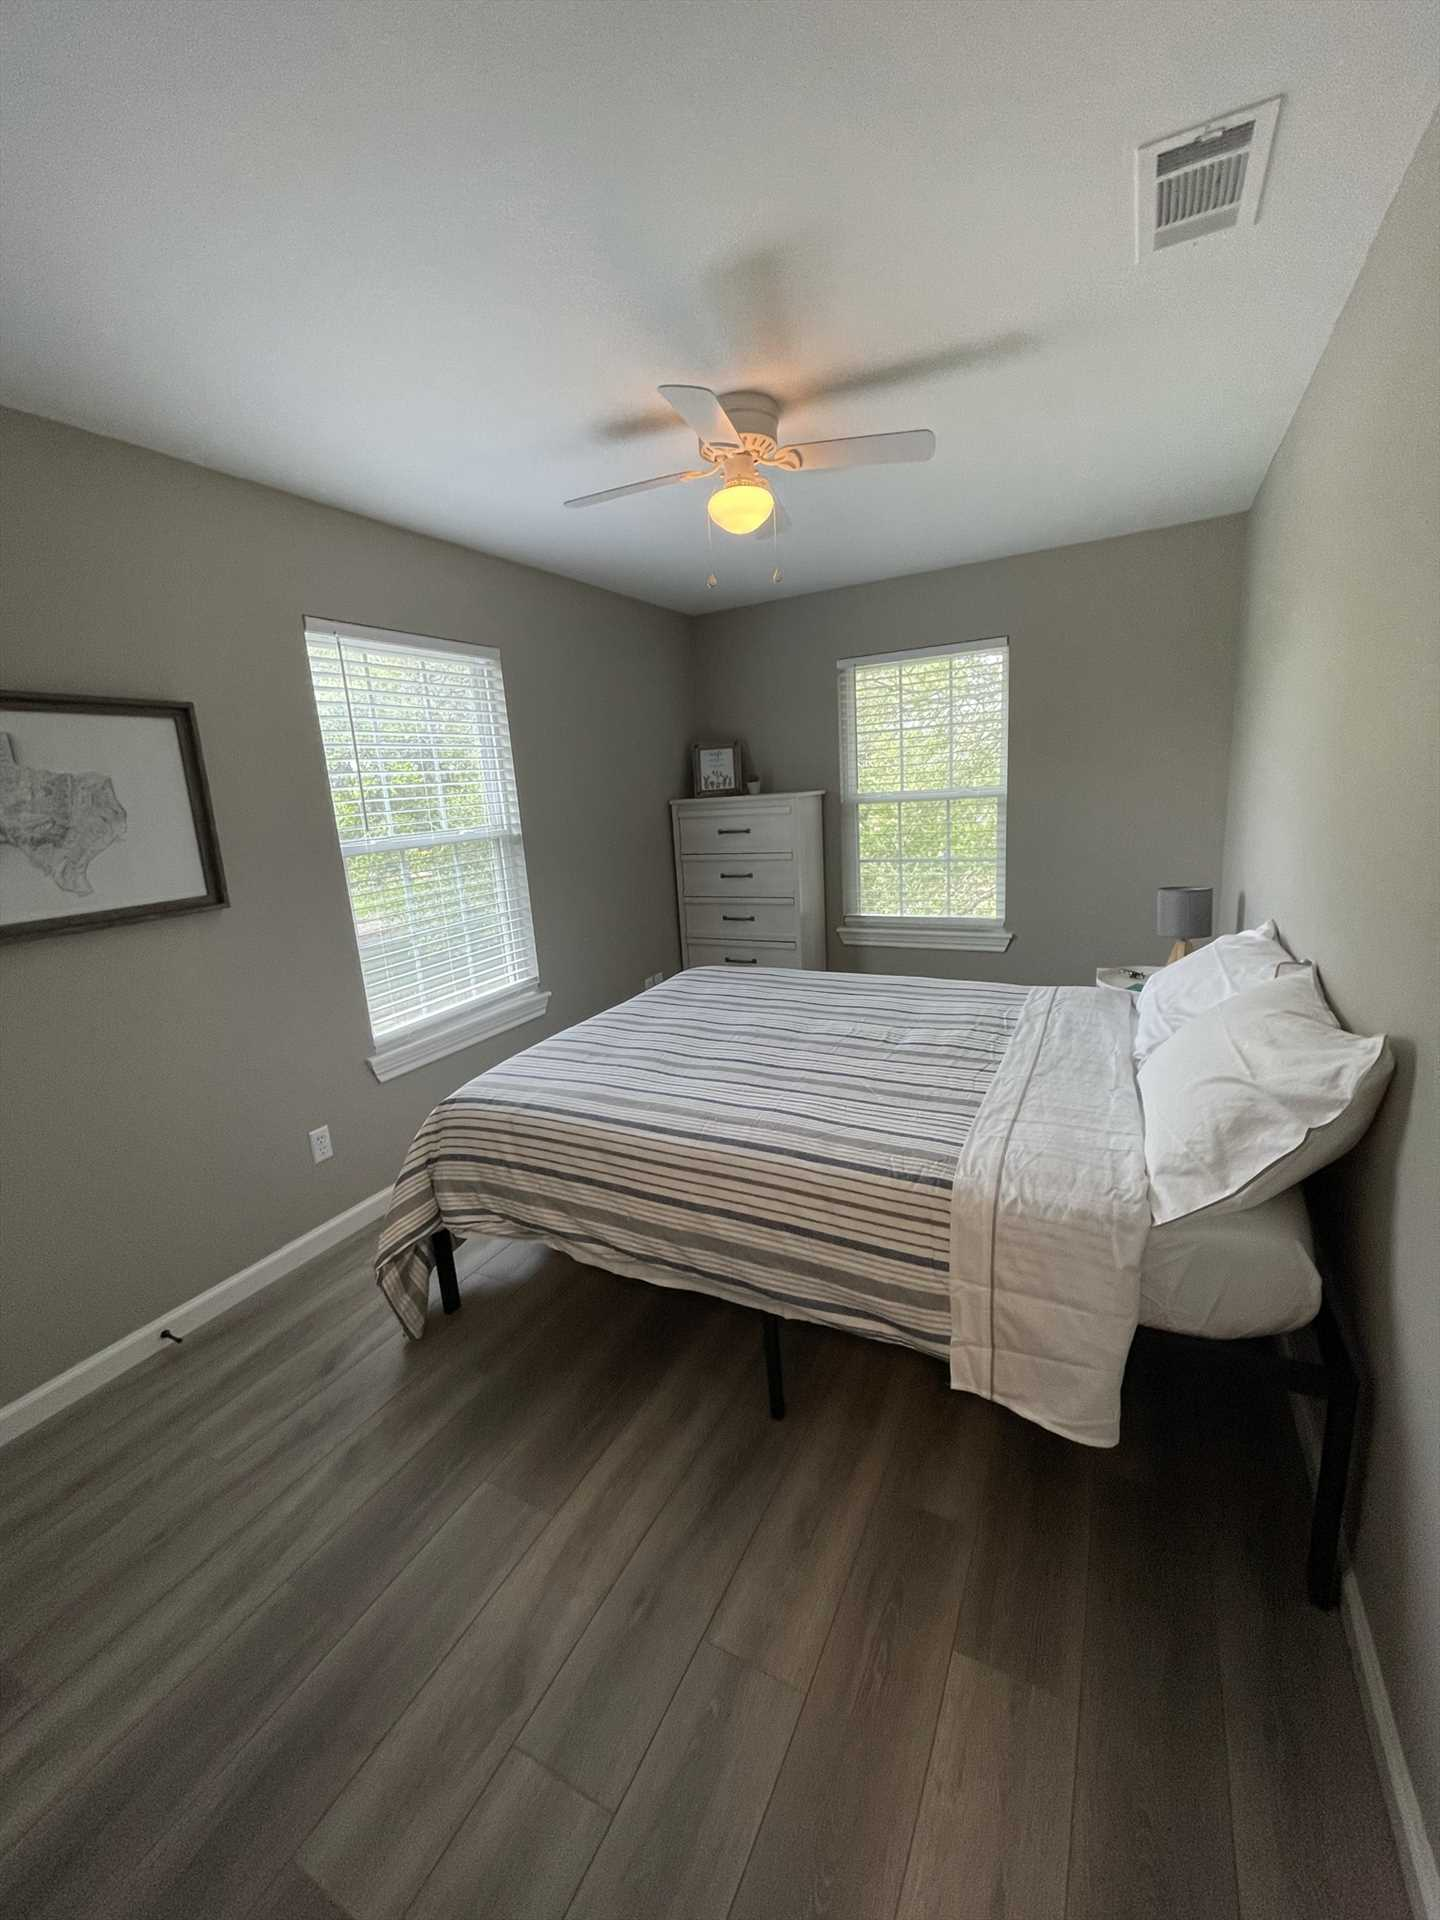 The second bedroom is tastefully appointed with a plush and comfortable queen-size bed.